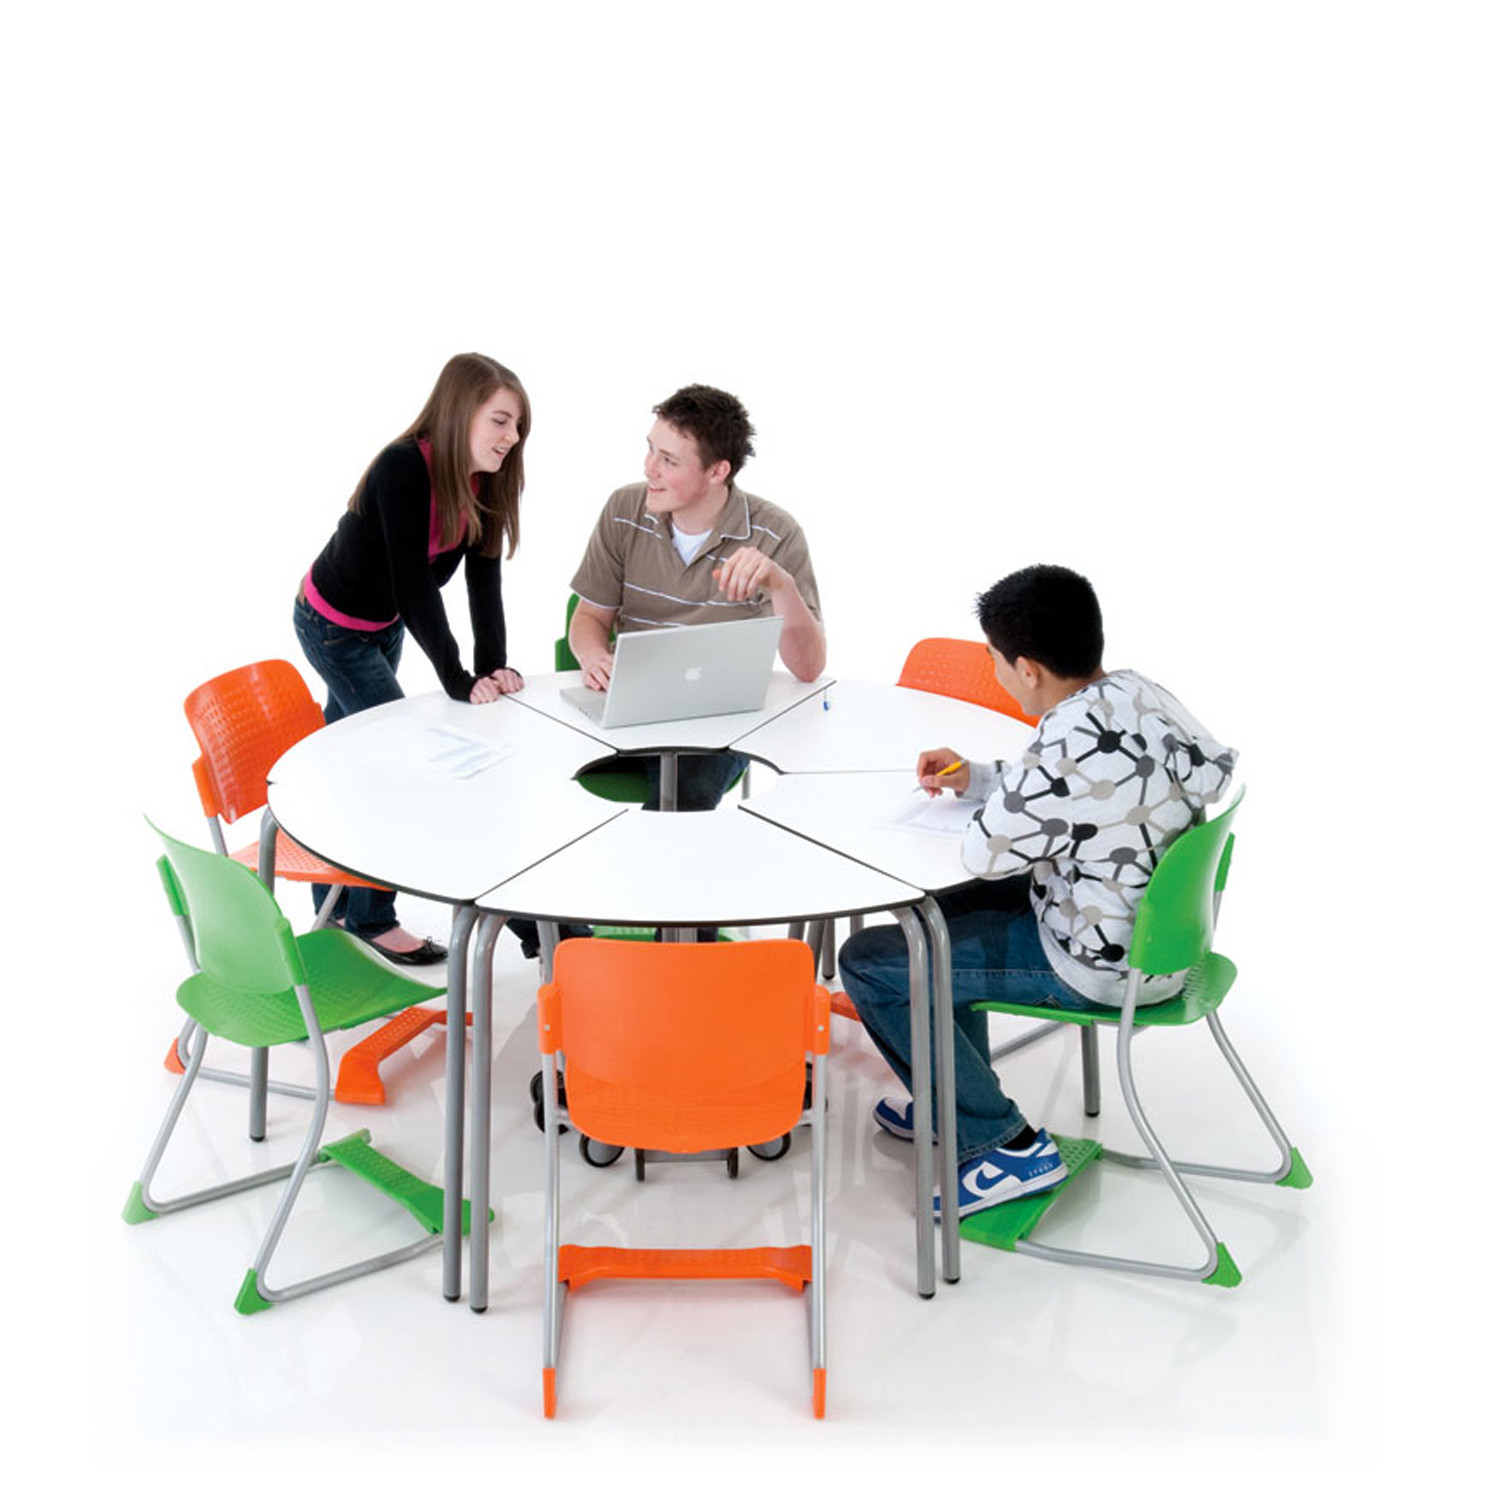 Newton Educational Chairs In Use